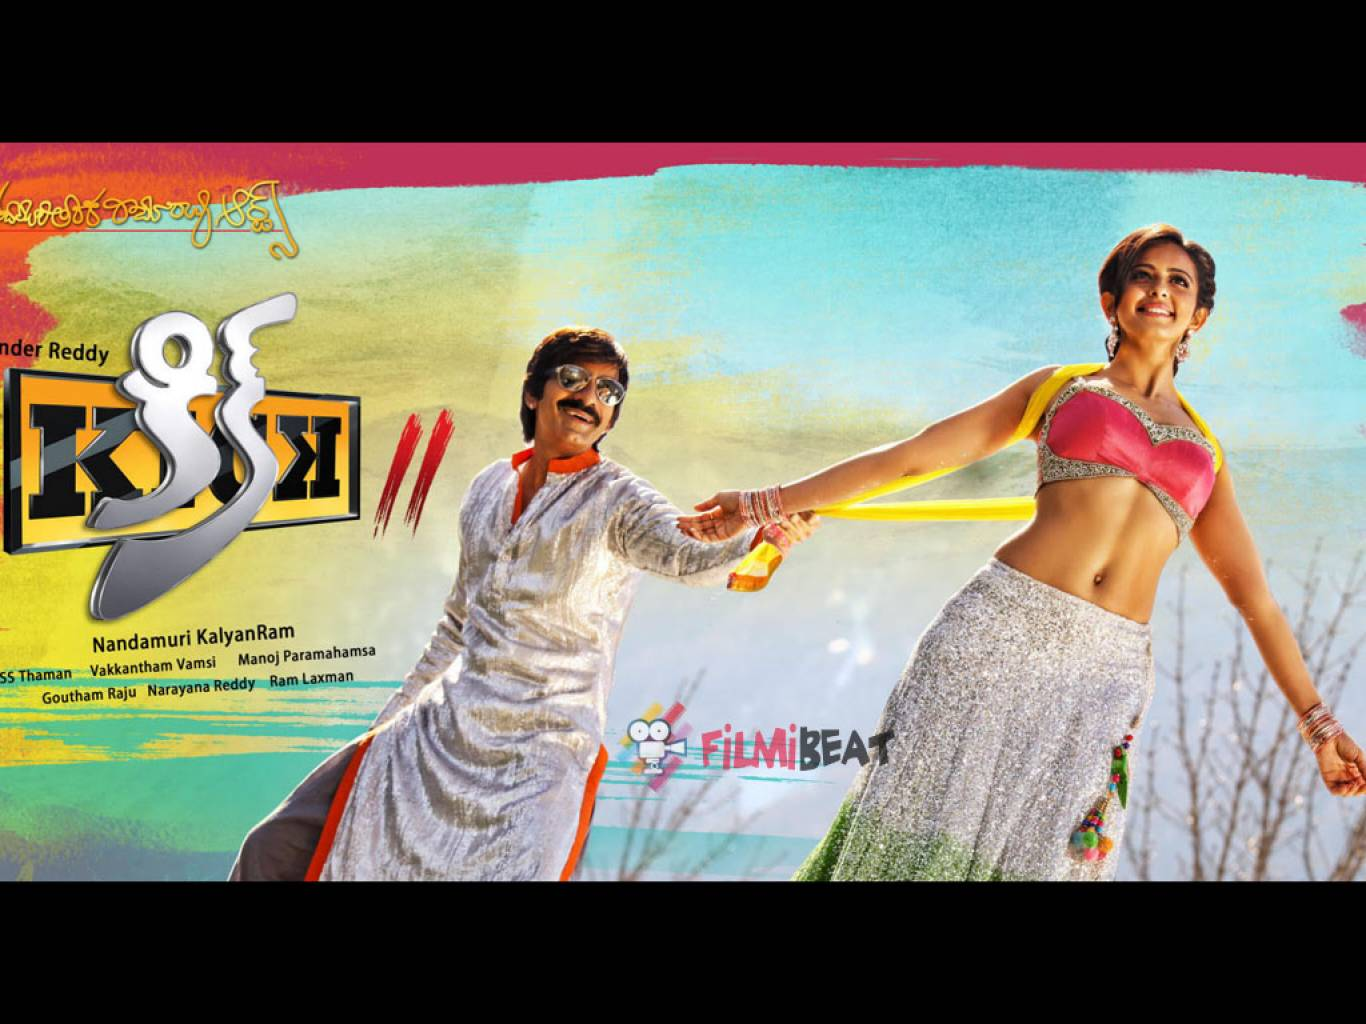 Kick 2 Wallpapers